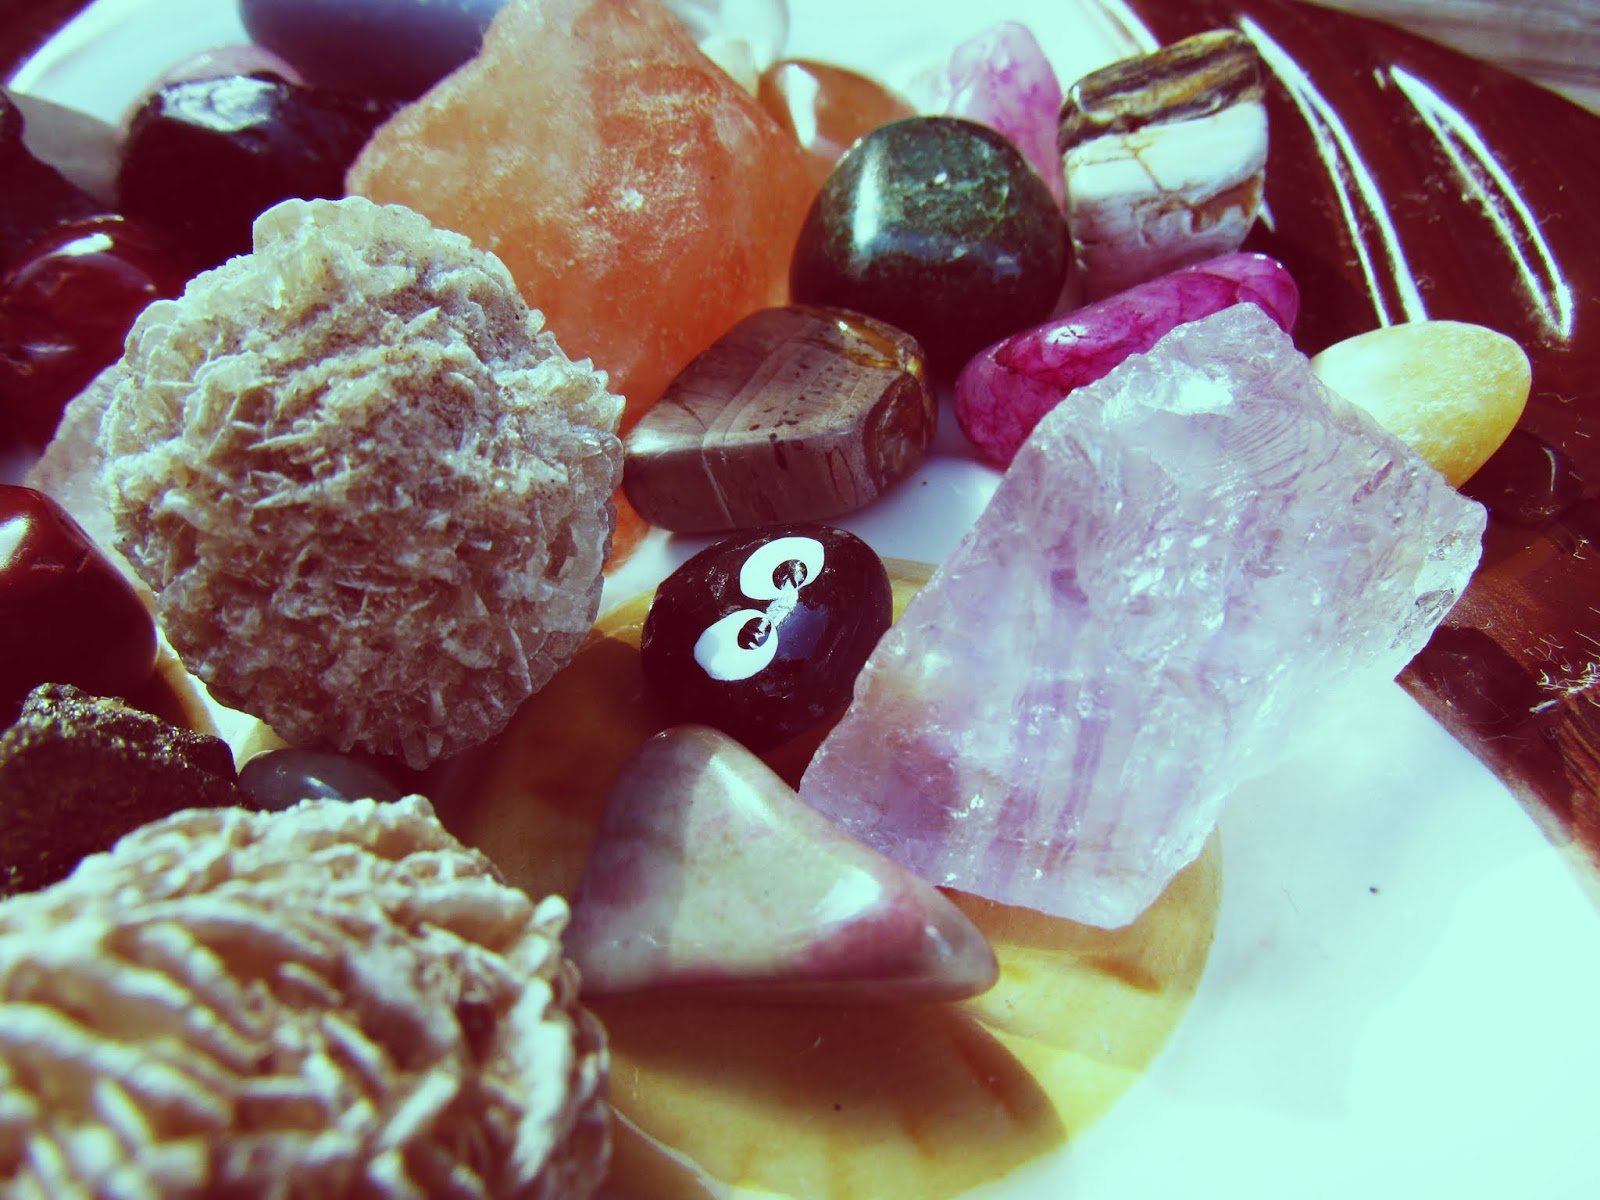 Throat chakra healing with loose gemstone mix pink Himalayan sea salt rock